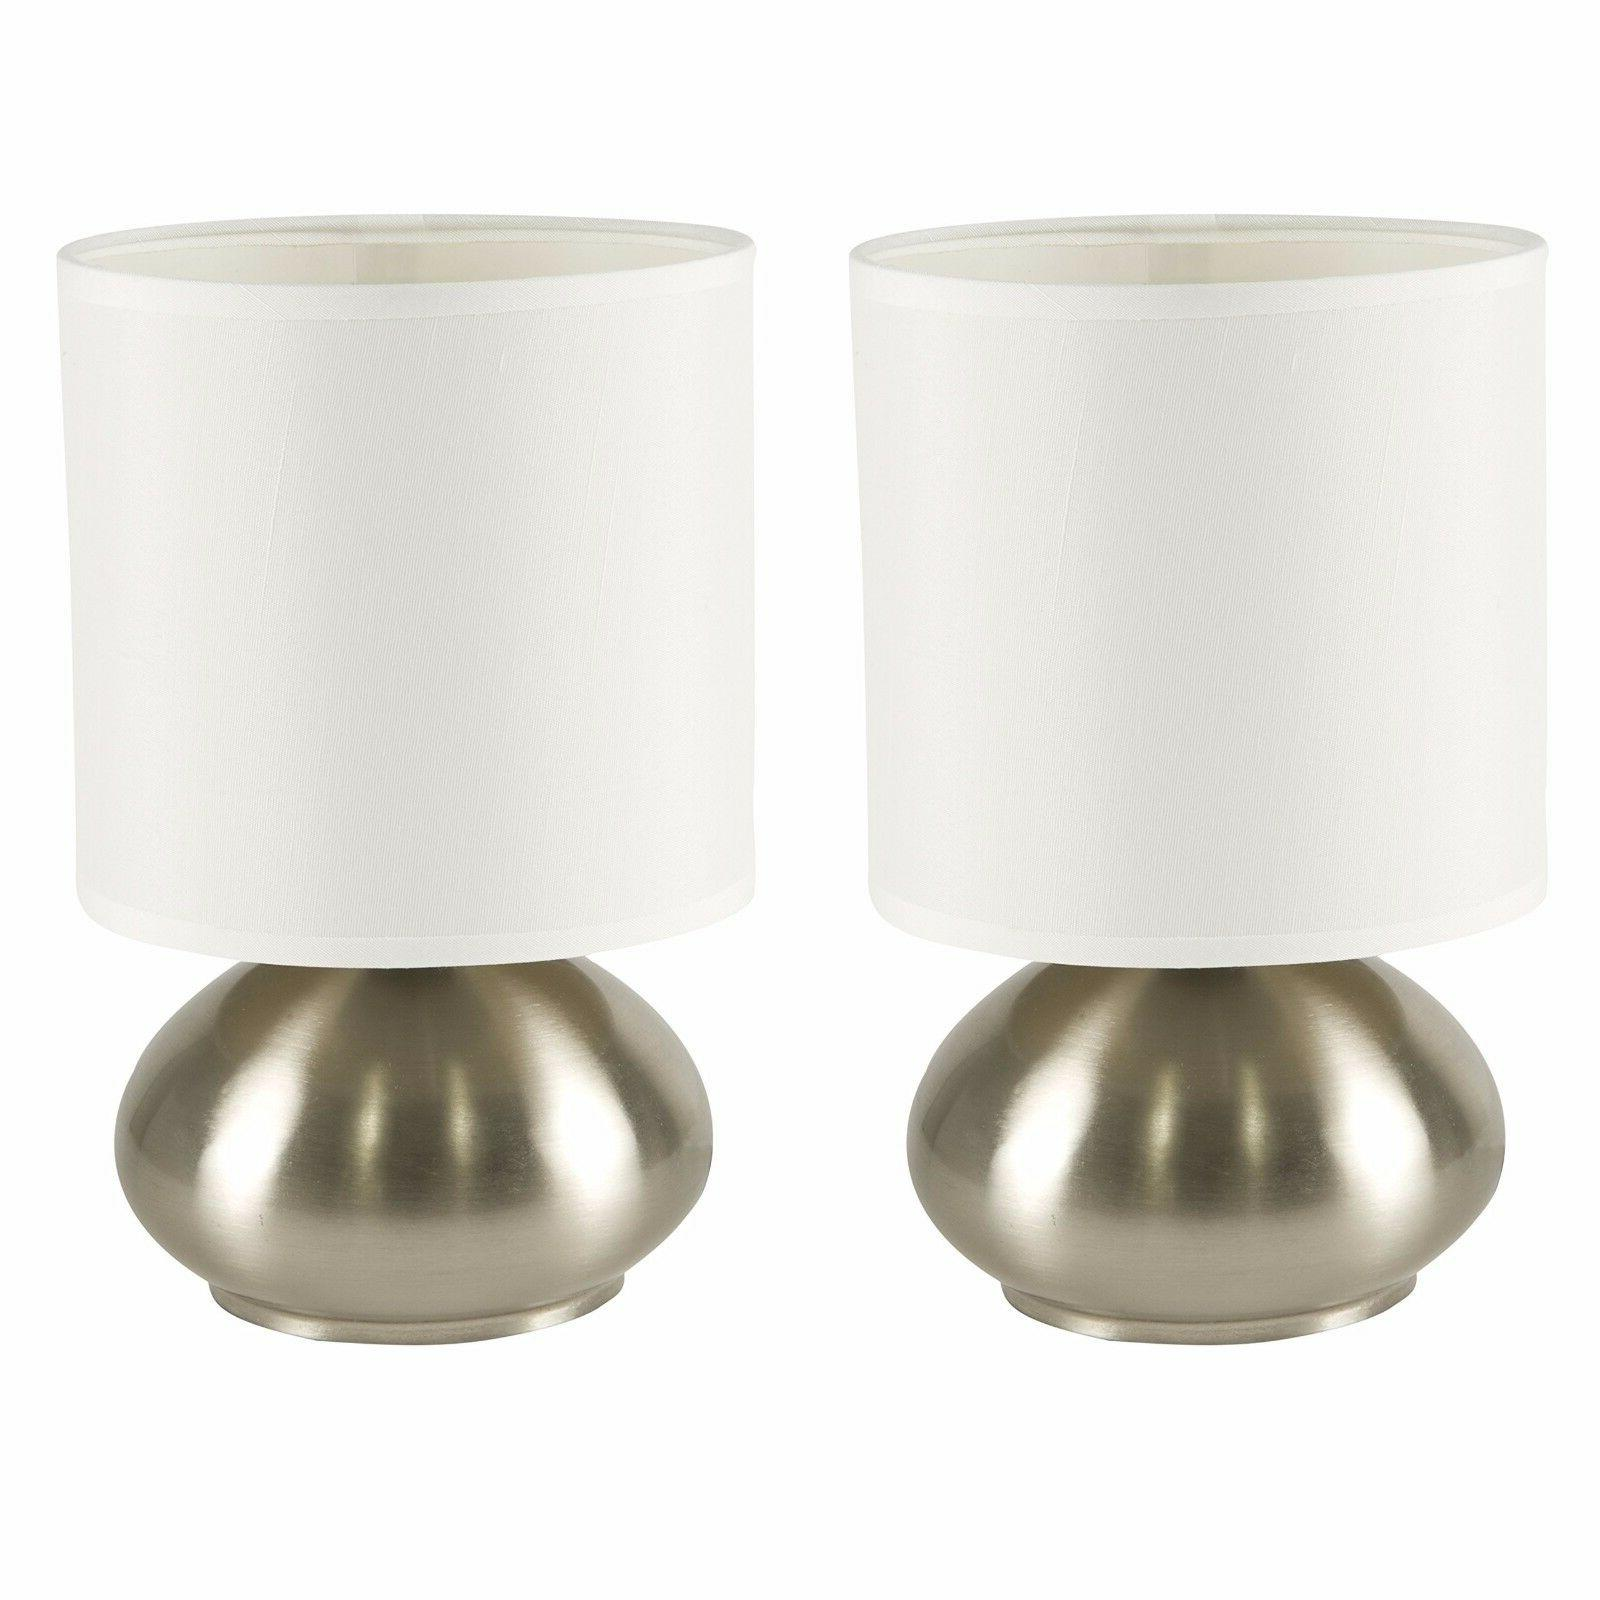 Table Lamps For Nightstands 2 NEW